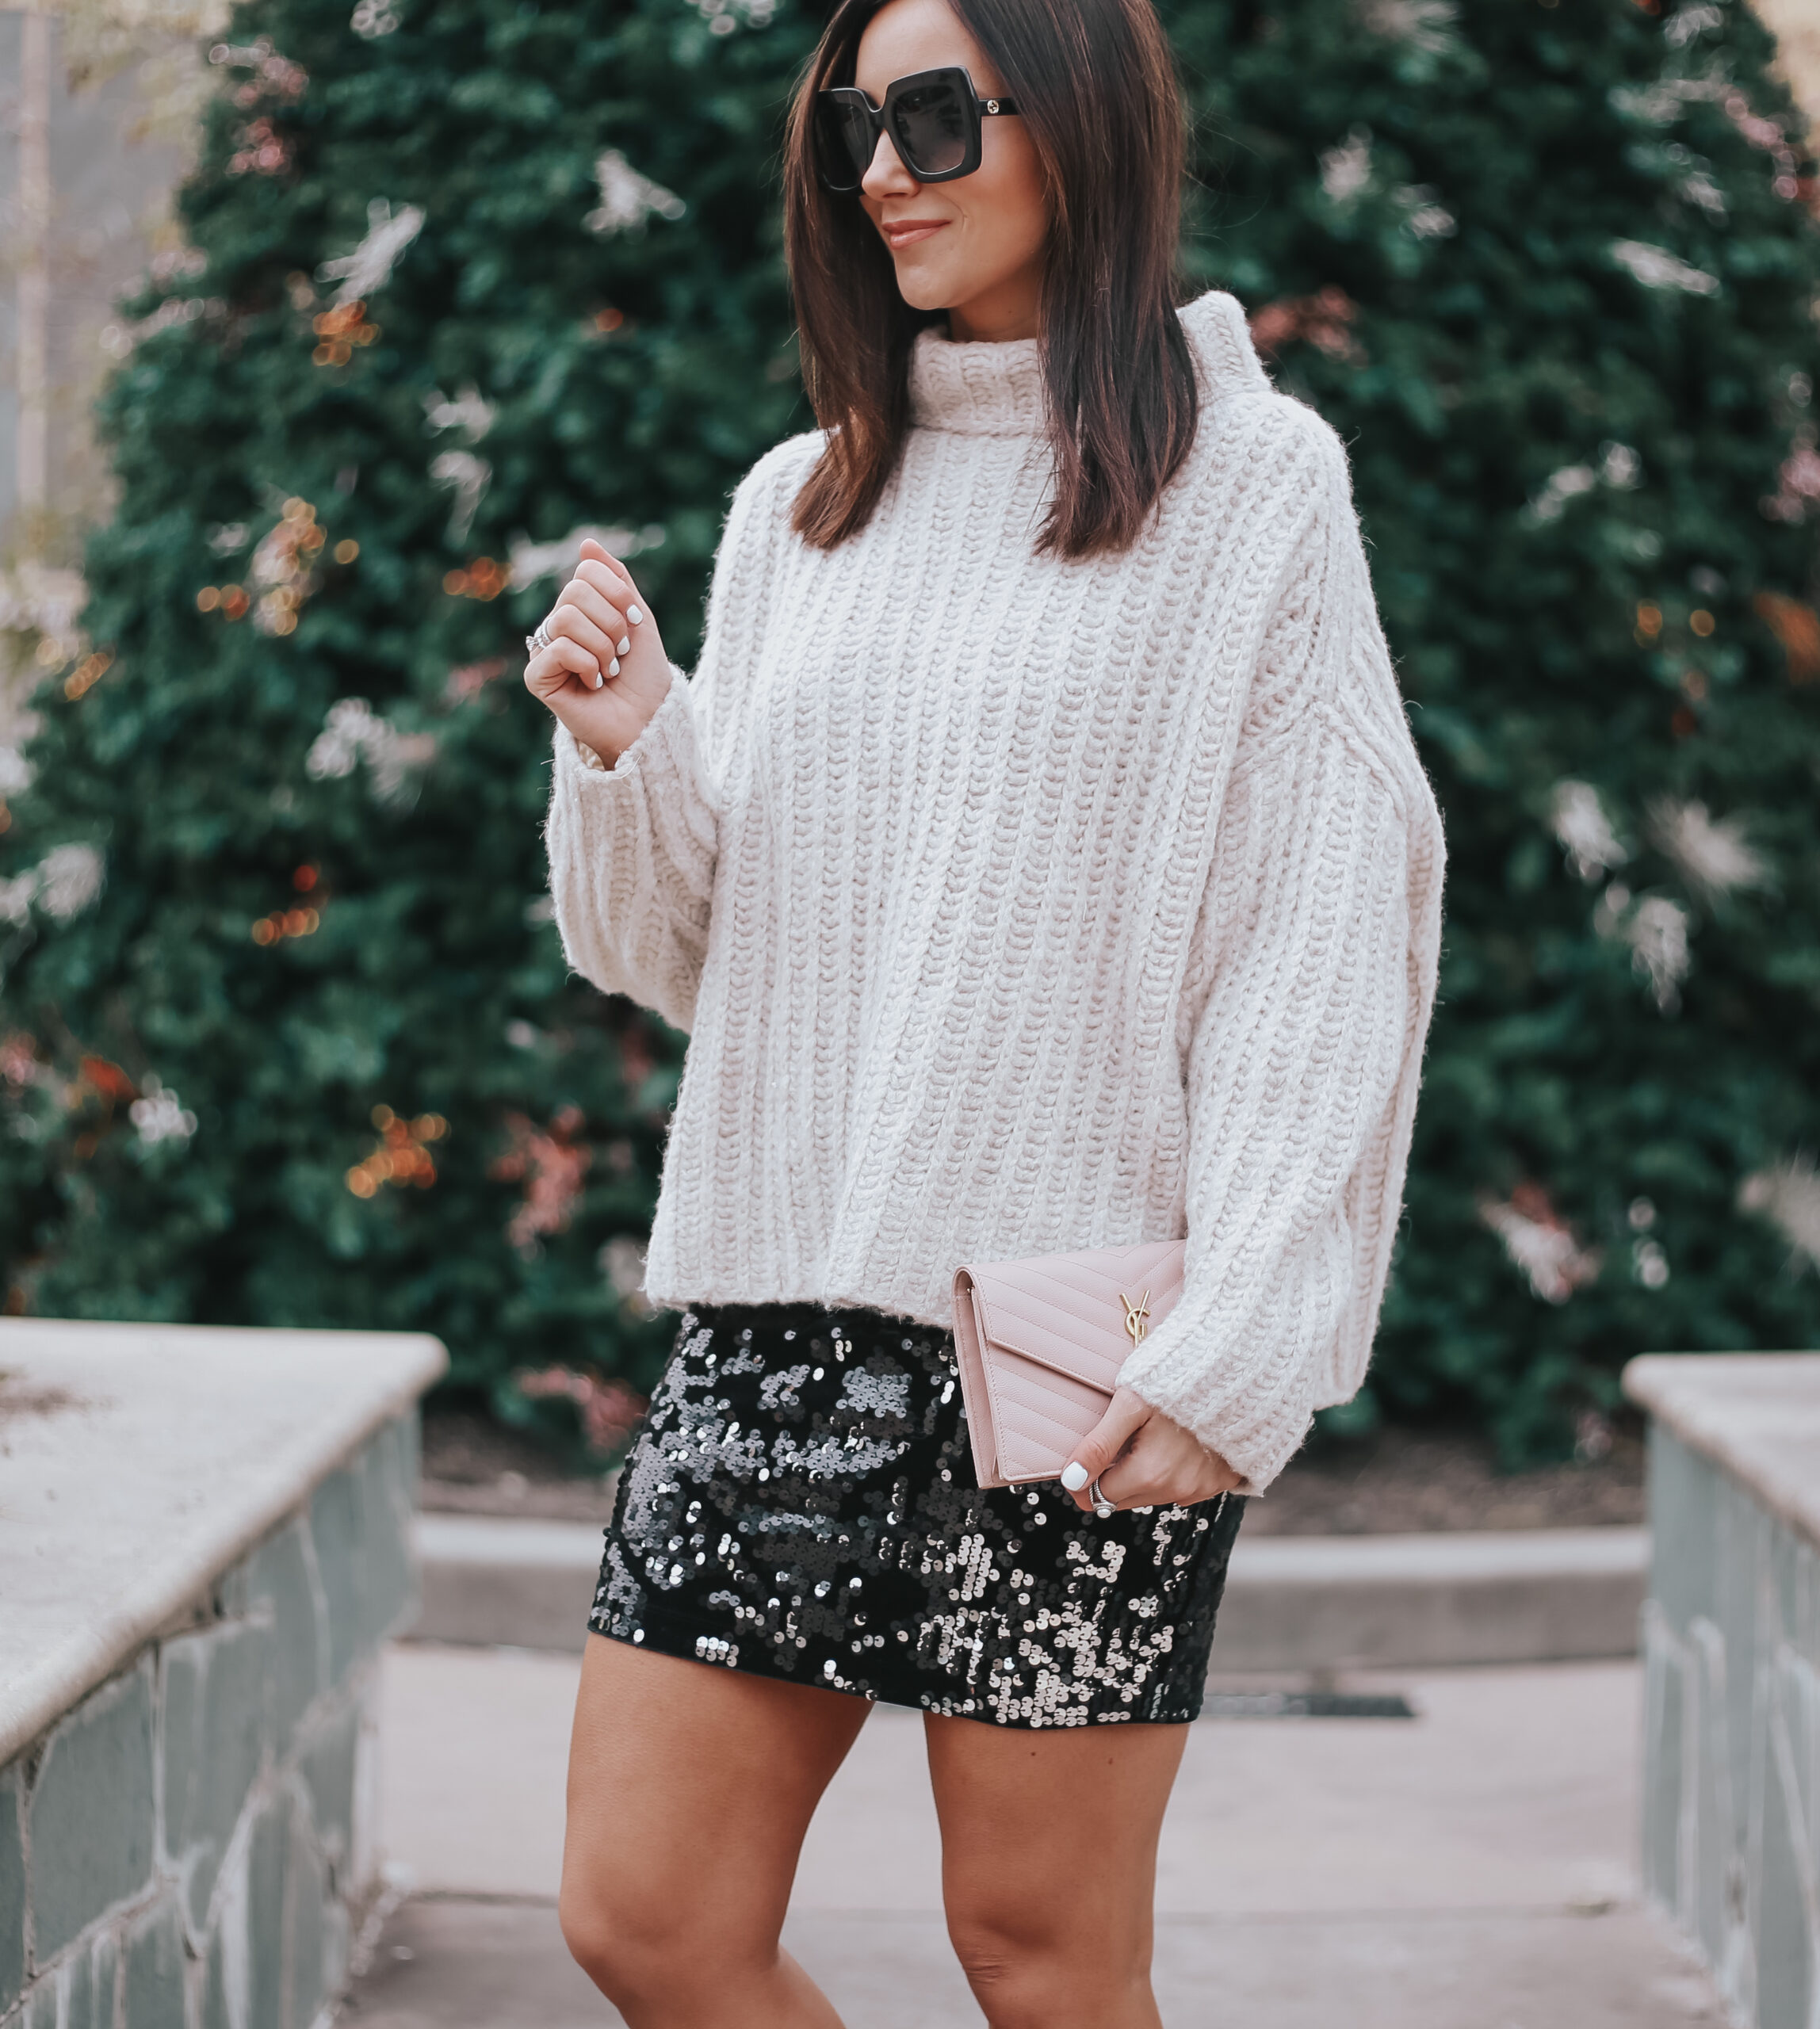 how to dress for cold new year's eve, new year's eve outfit with short sequin skirt